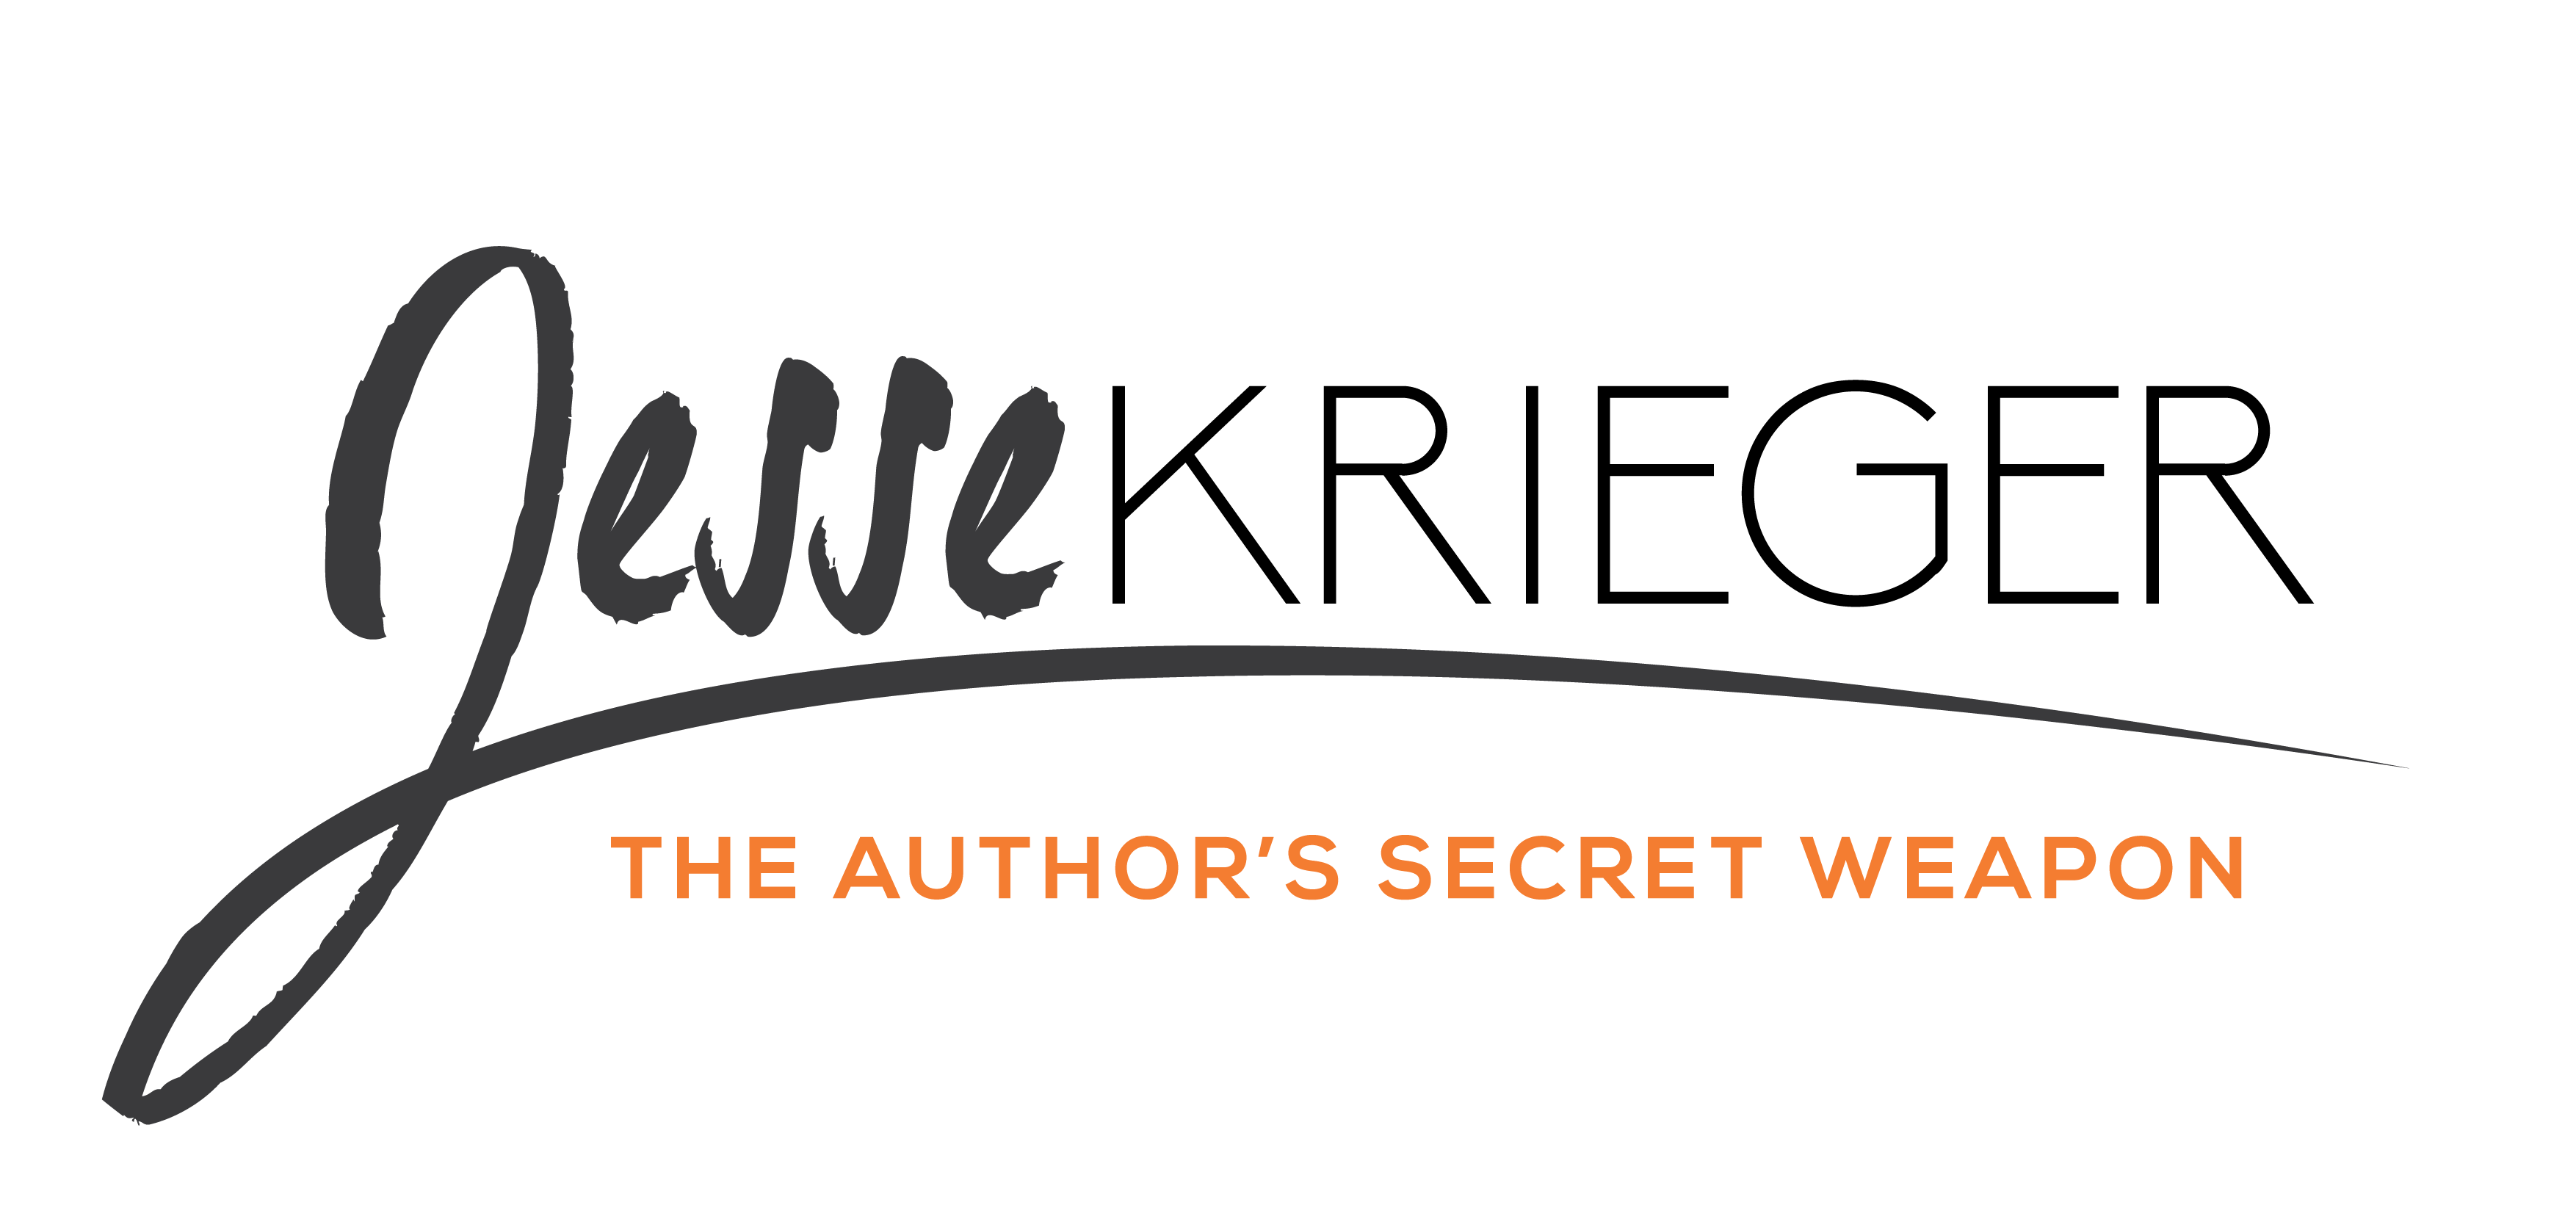 Jesse Krieger - The Author's Secret Weapon